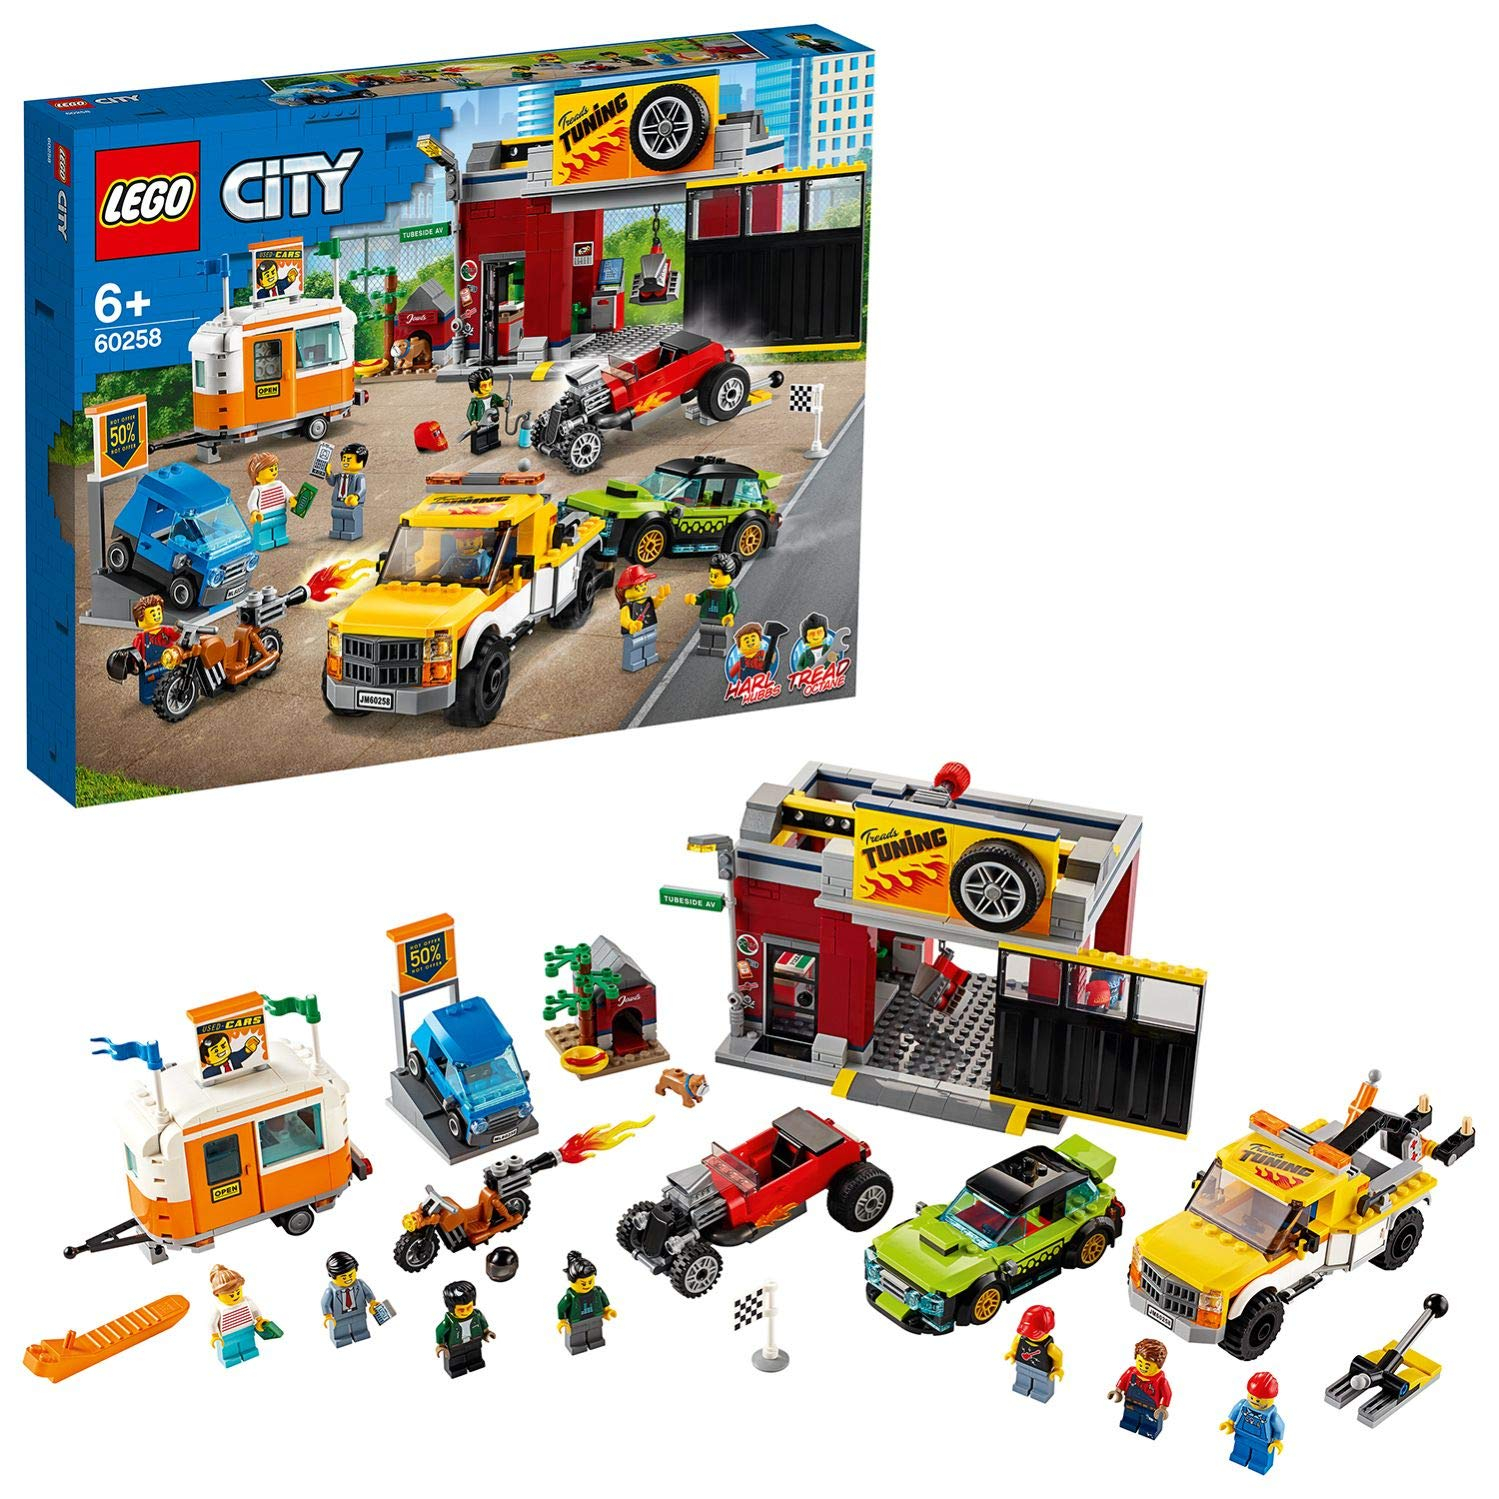 lego city town donut shop opening toy cars set with police motorbike truck with crane trailer and 10 minifigures